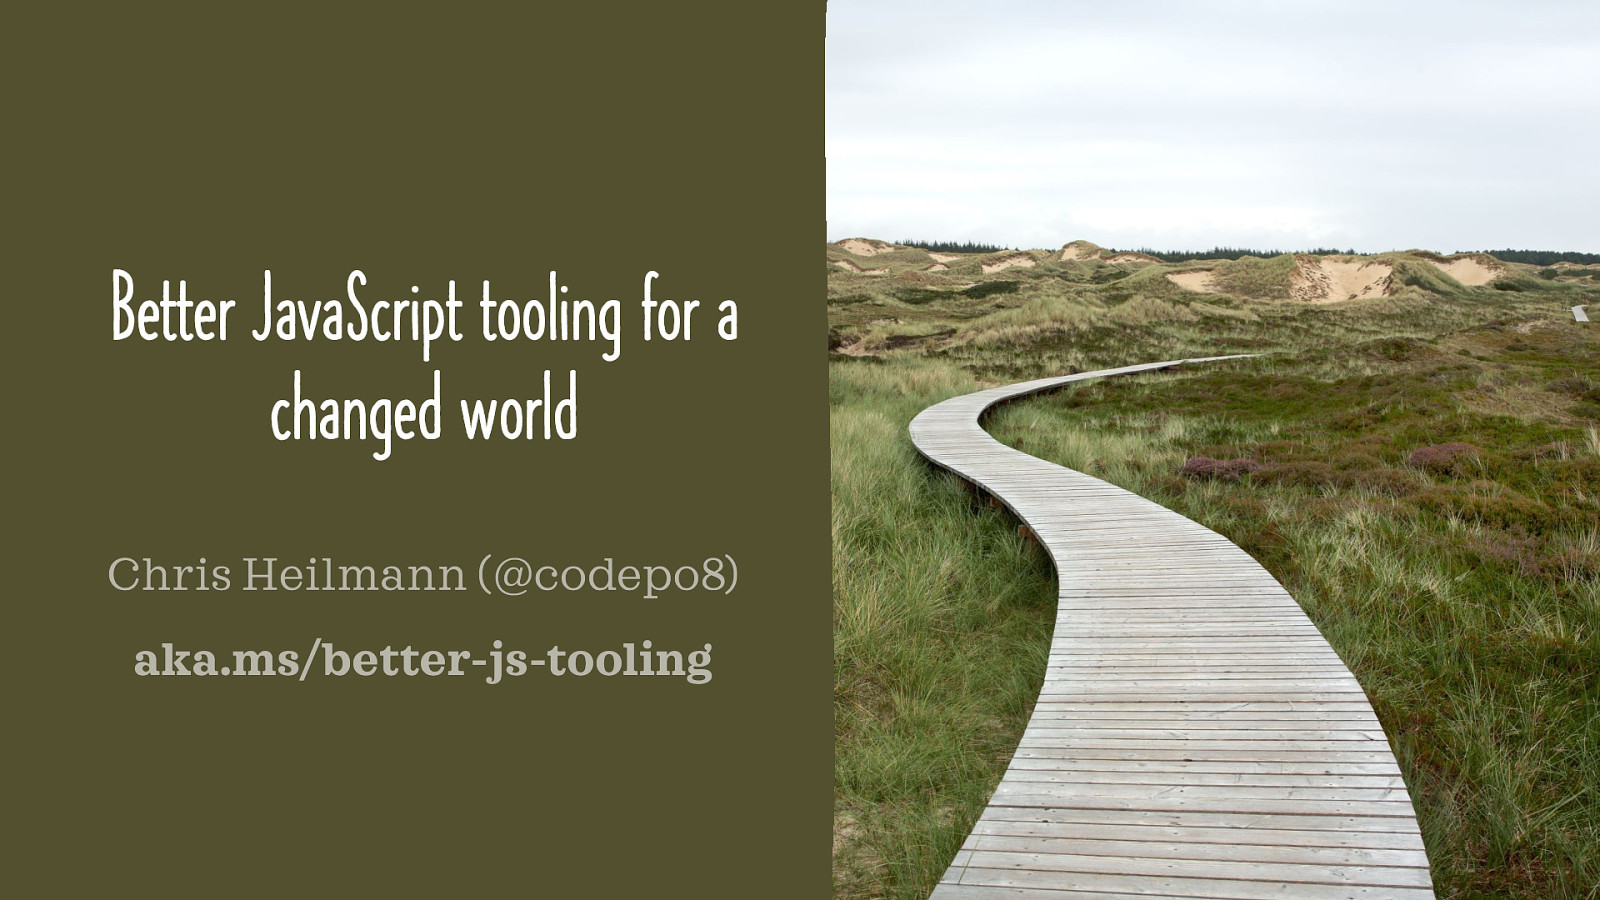 Better JavaScript tooling for a changed world